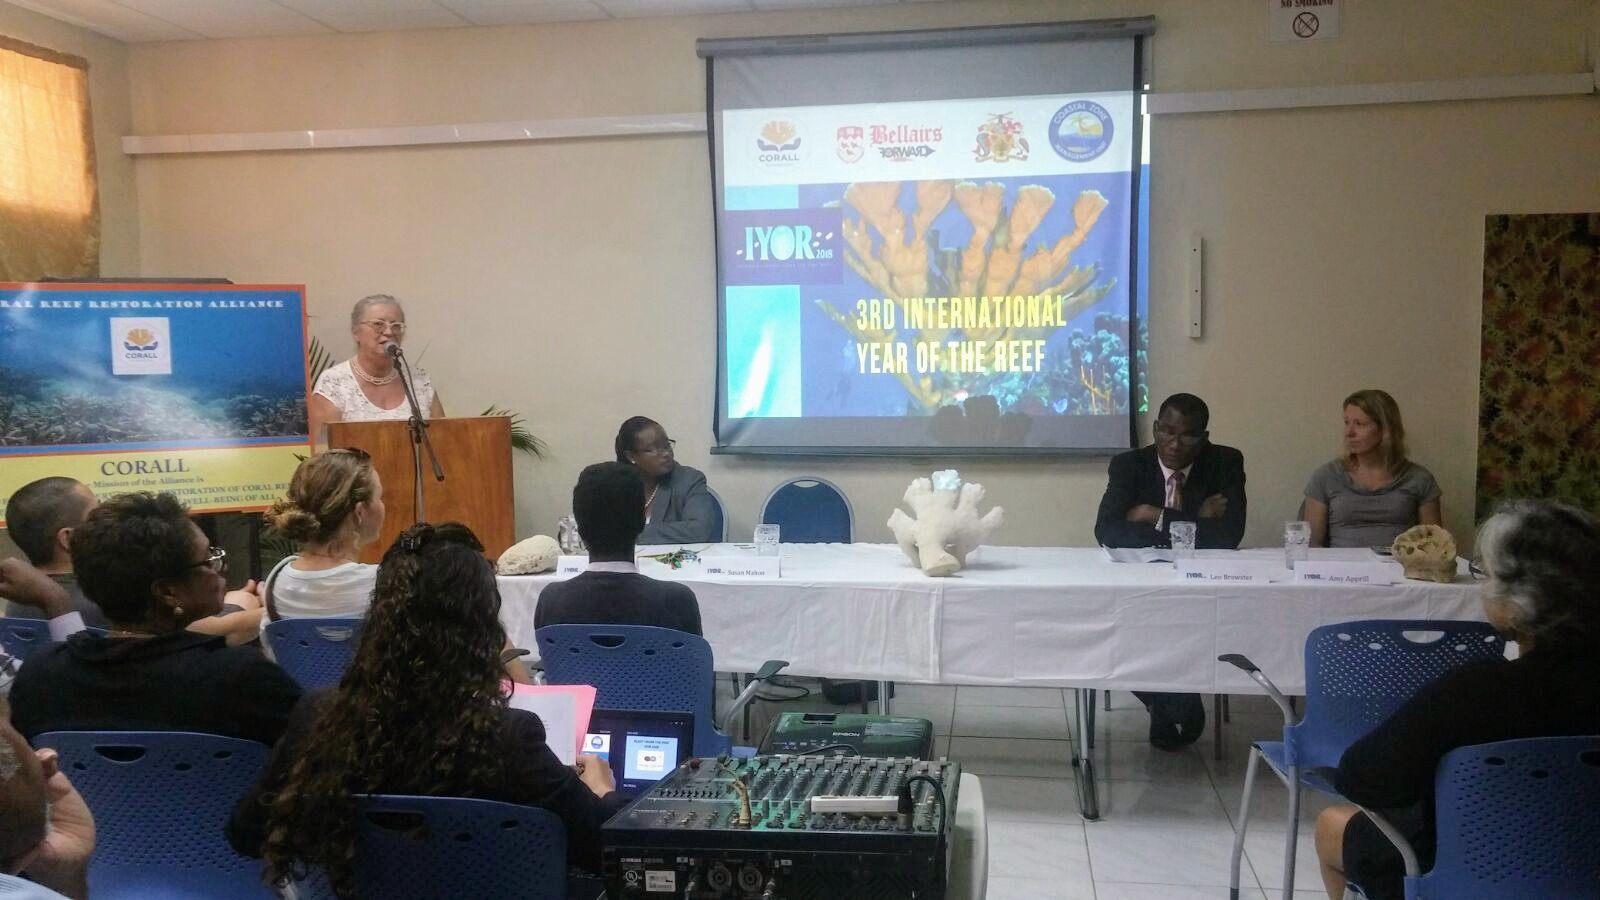 Barbados joins in observance of IYOR